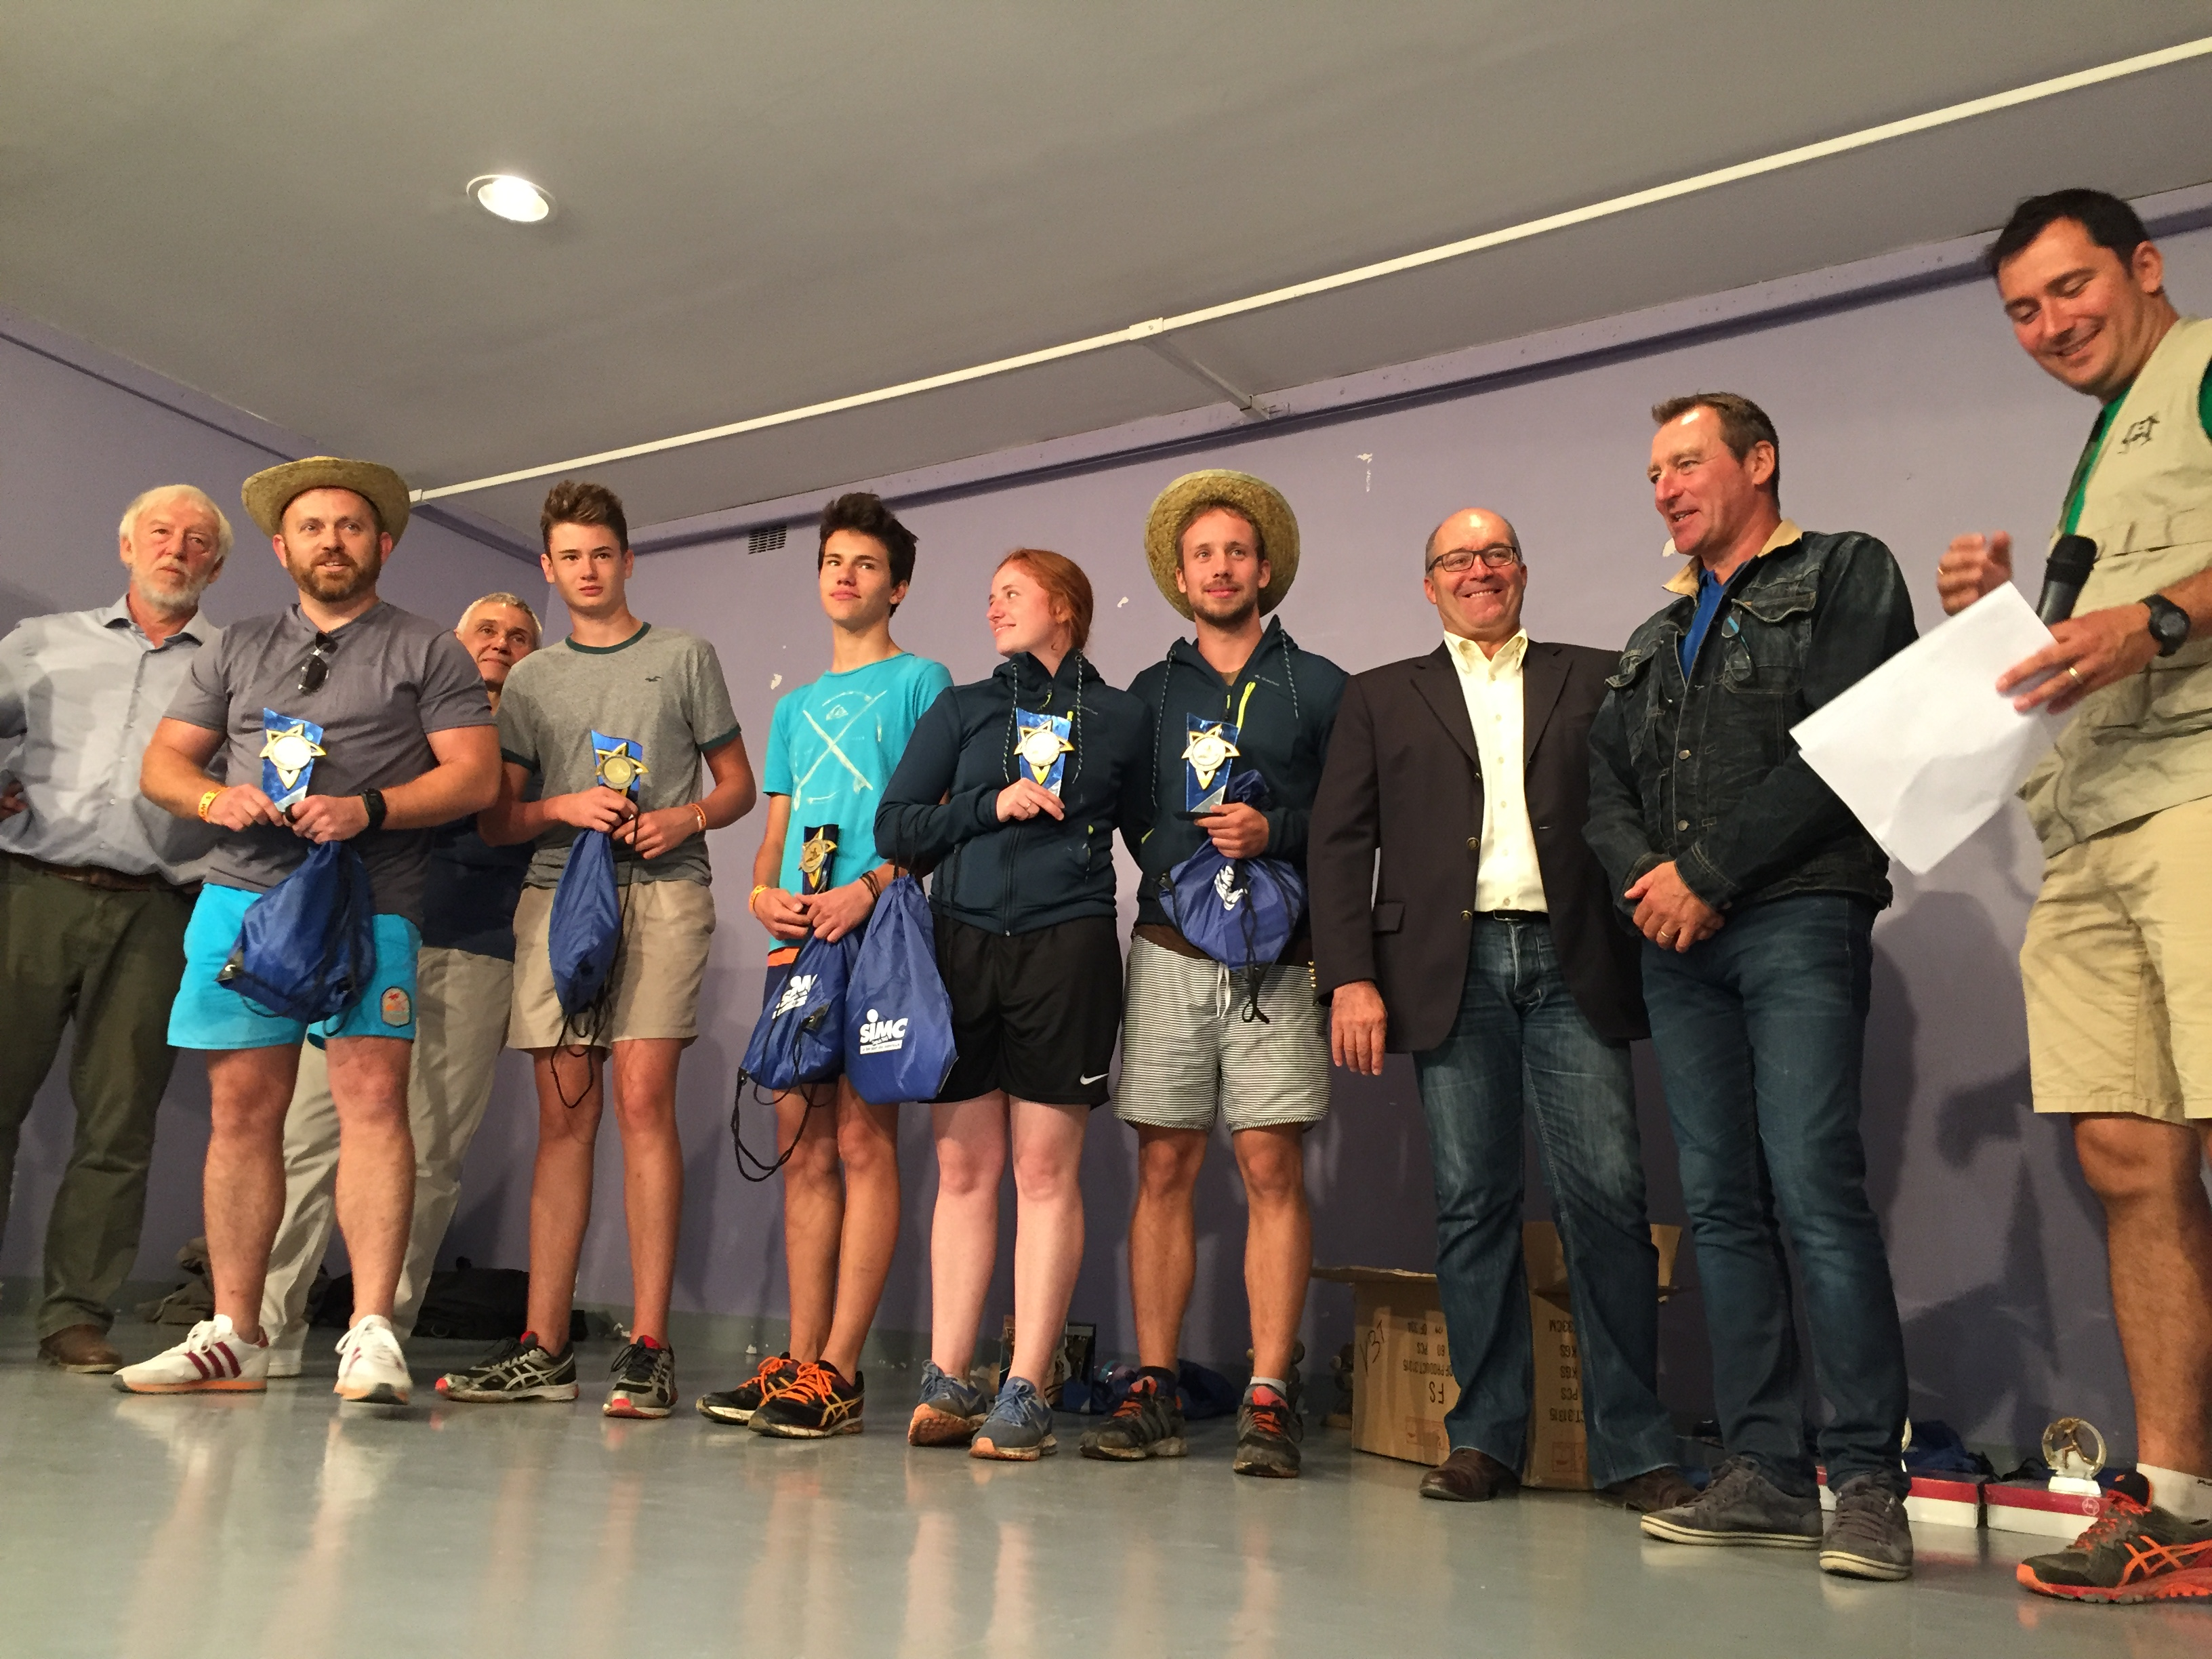 games2017photo/finalistes_kayak.jpg